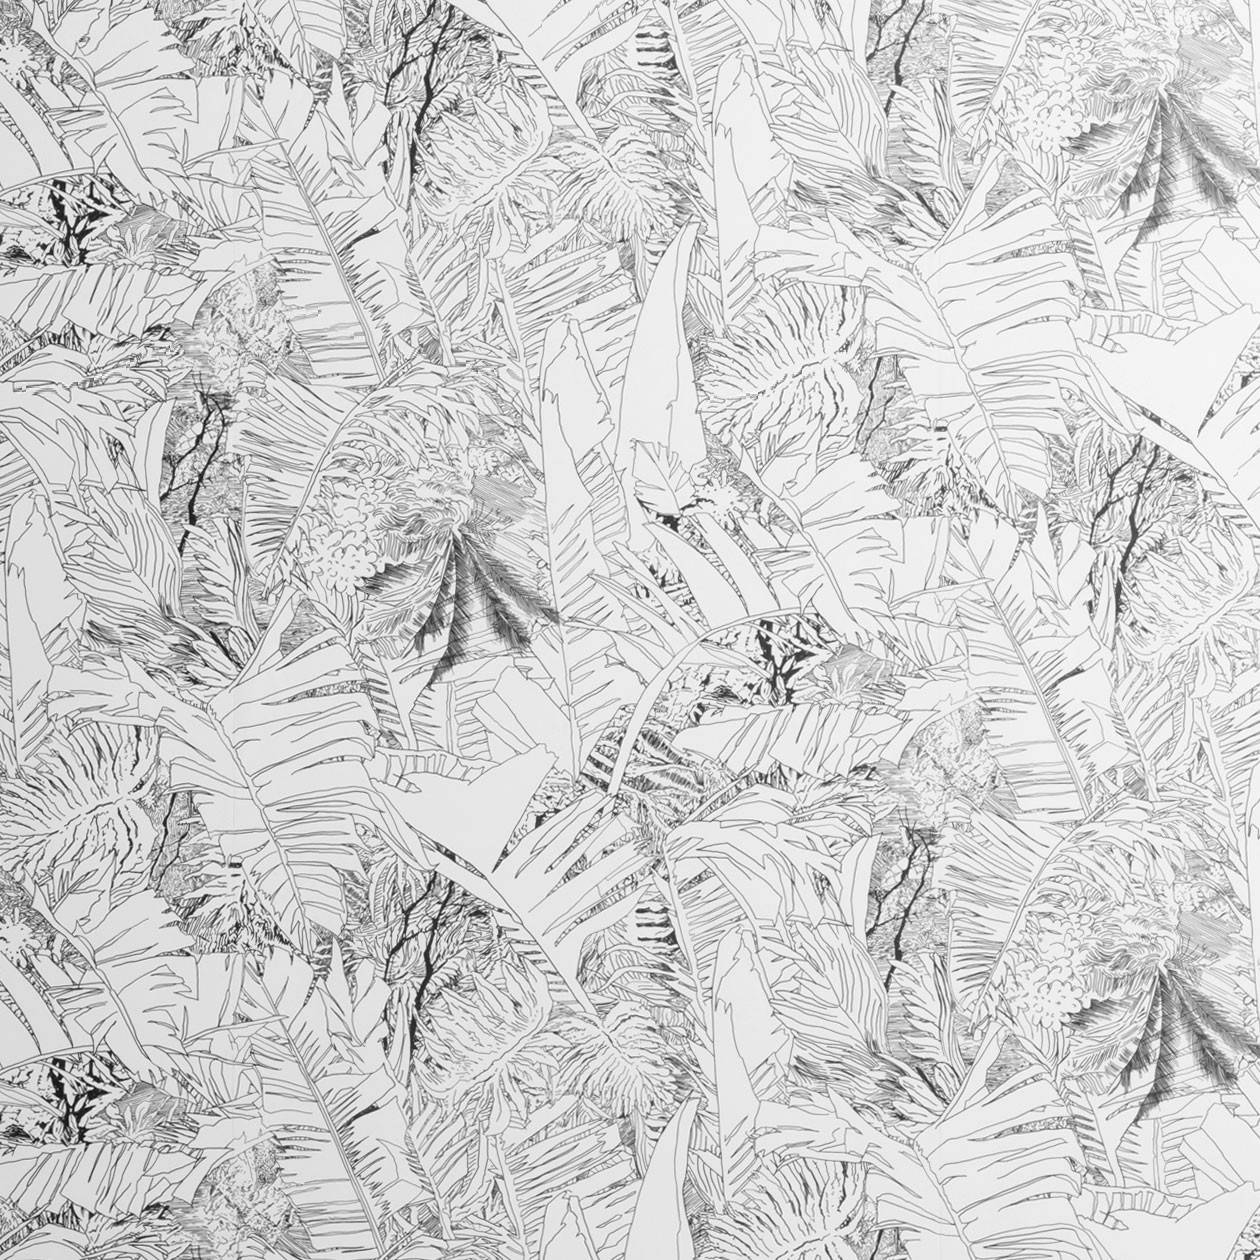 Jungle wallpaer black on white - Petite Friture